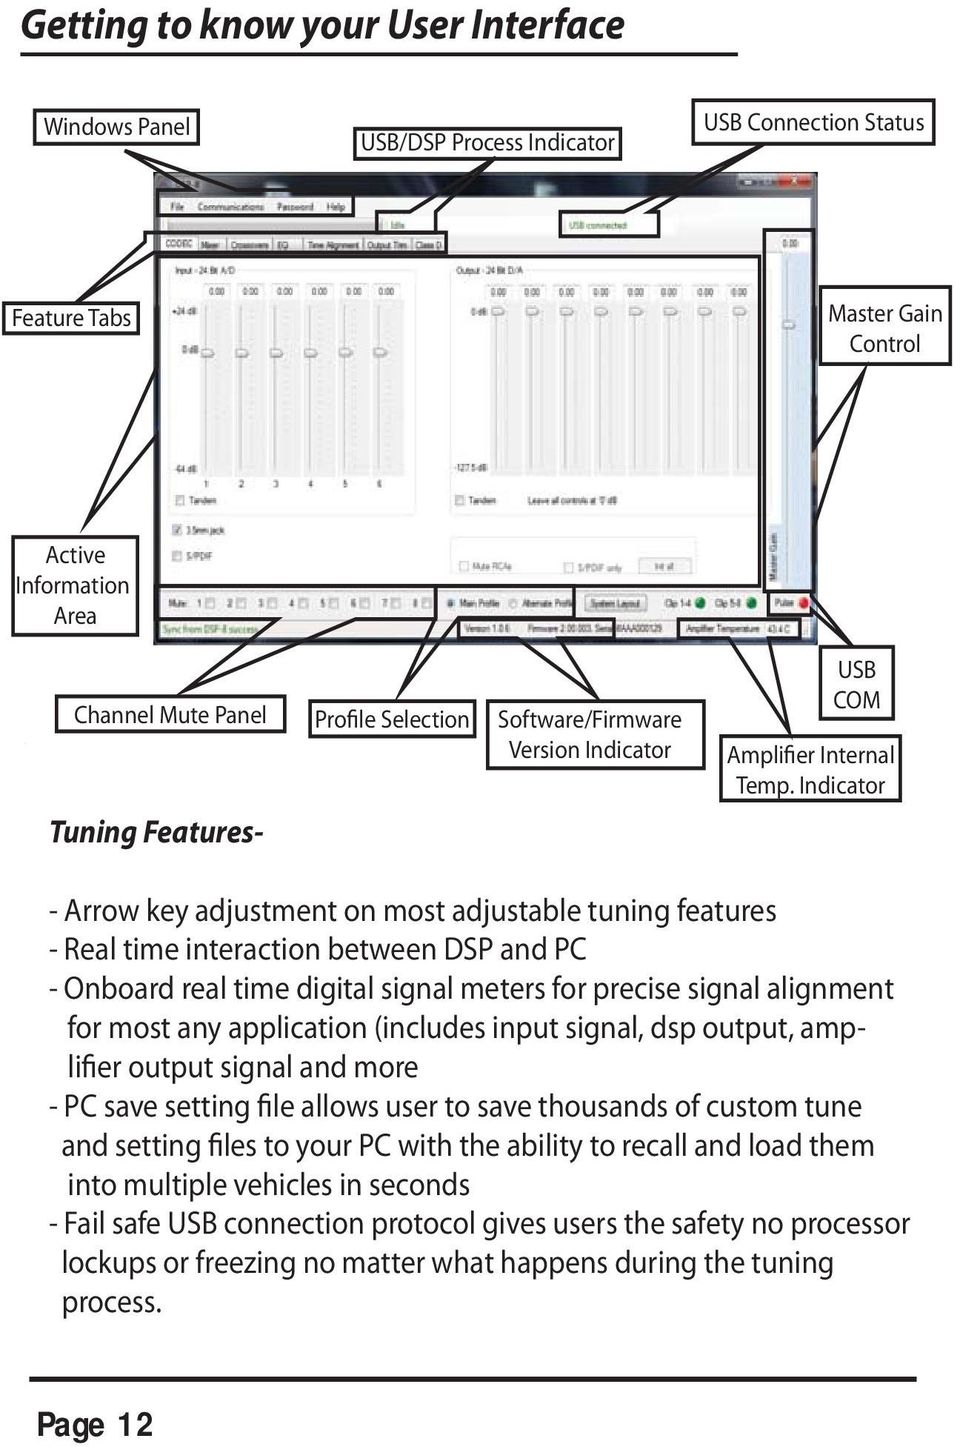 Indicator - Arrow key adjustment on most adjustable tuning features - Real time interaction between DSP and PC - Onboard real time digital signal meters for precise signal alignment for most any